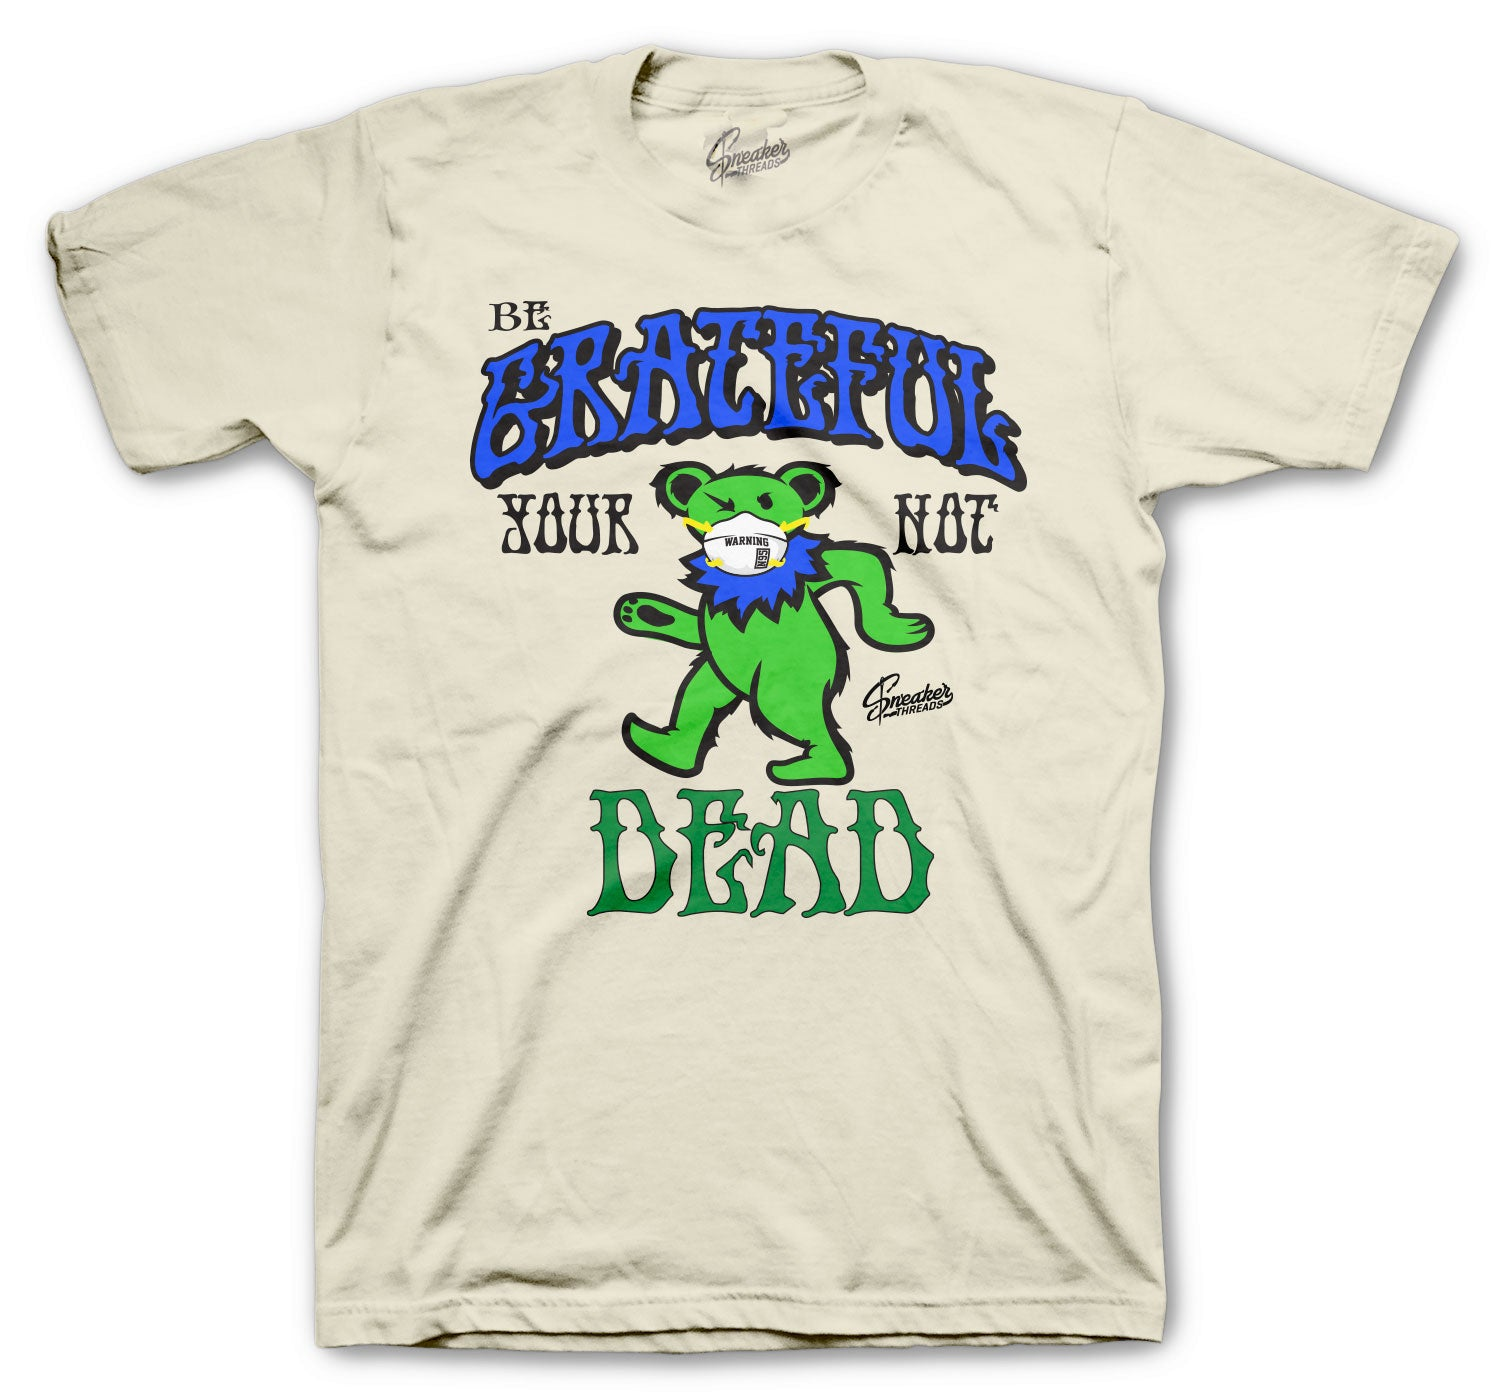 Dunk SB Grateful Alive Shirt - Sail/Green